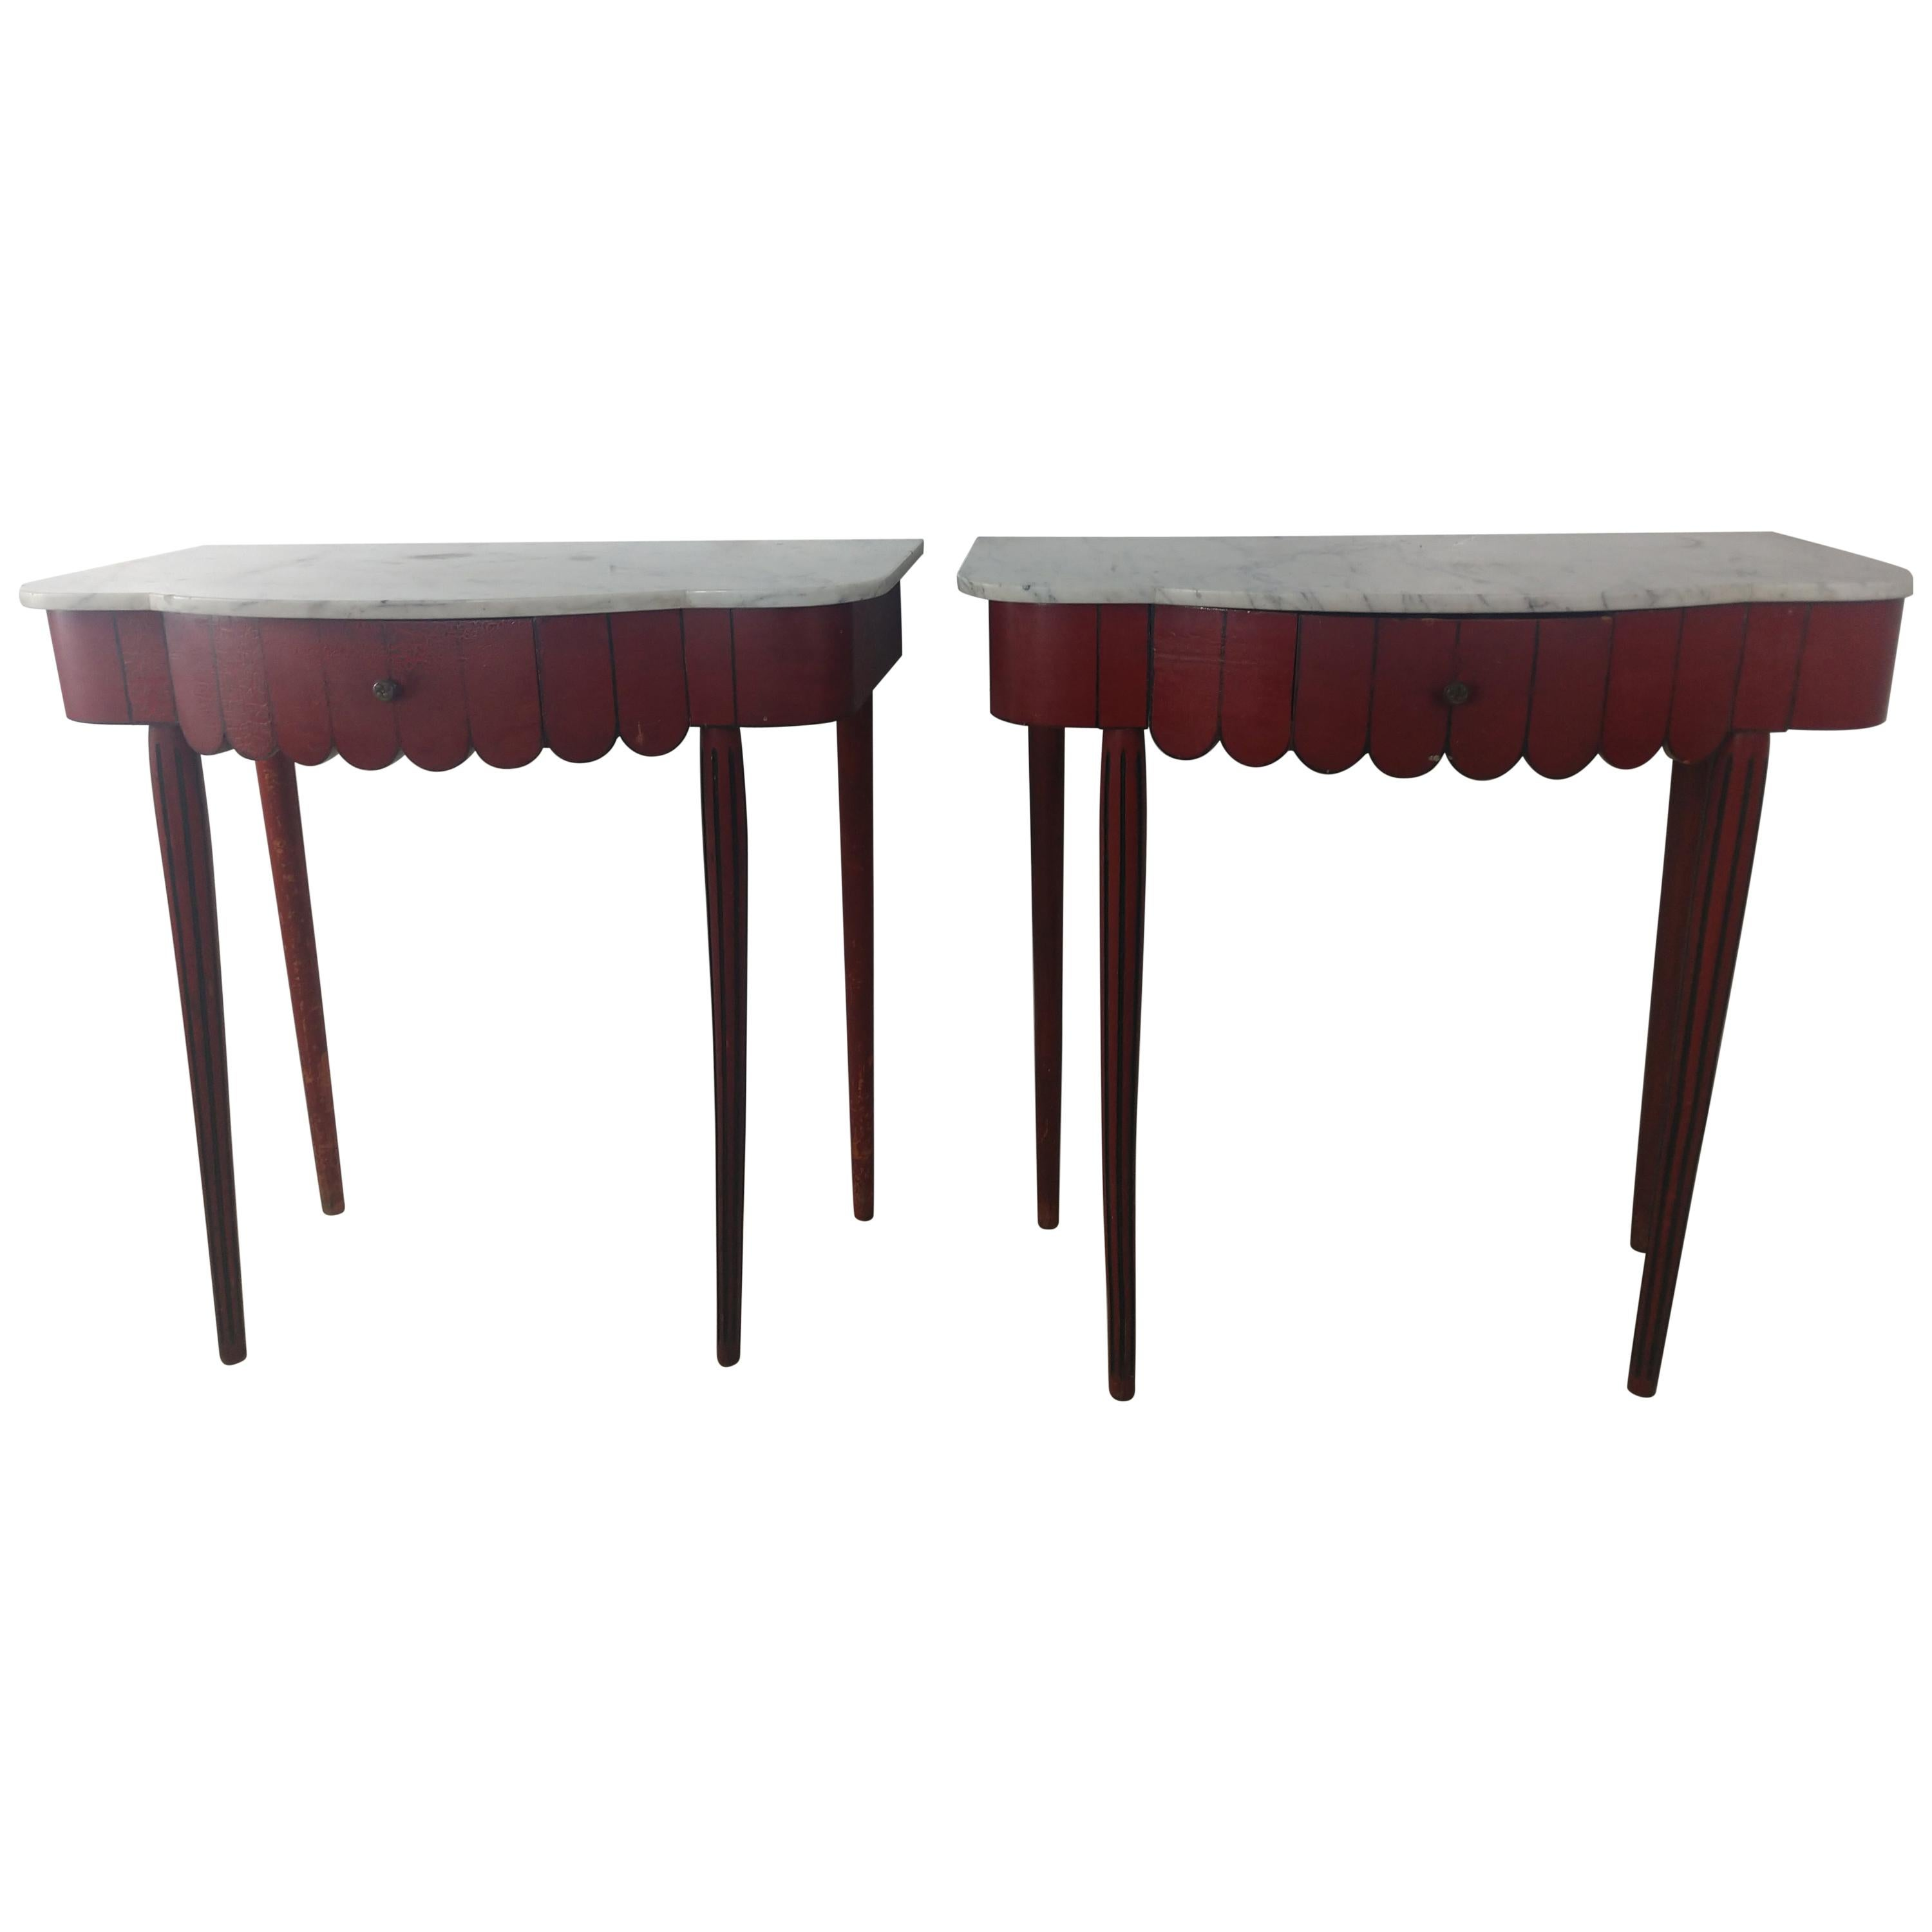 Pair of French Marble-Top Console Tables, C1940